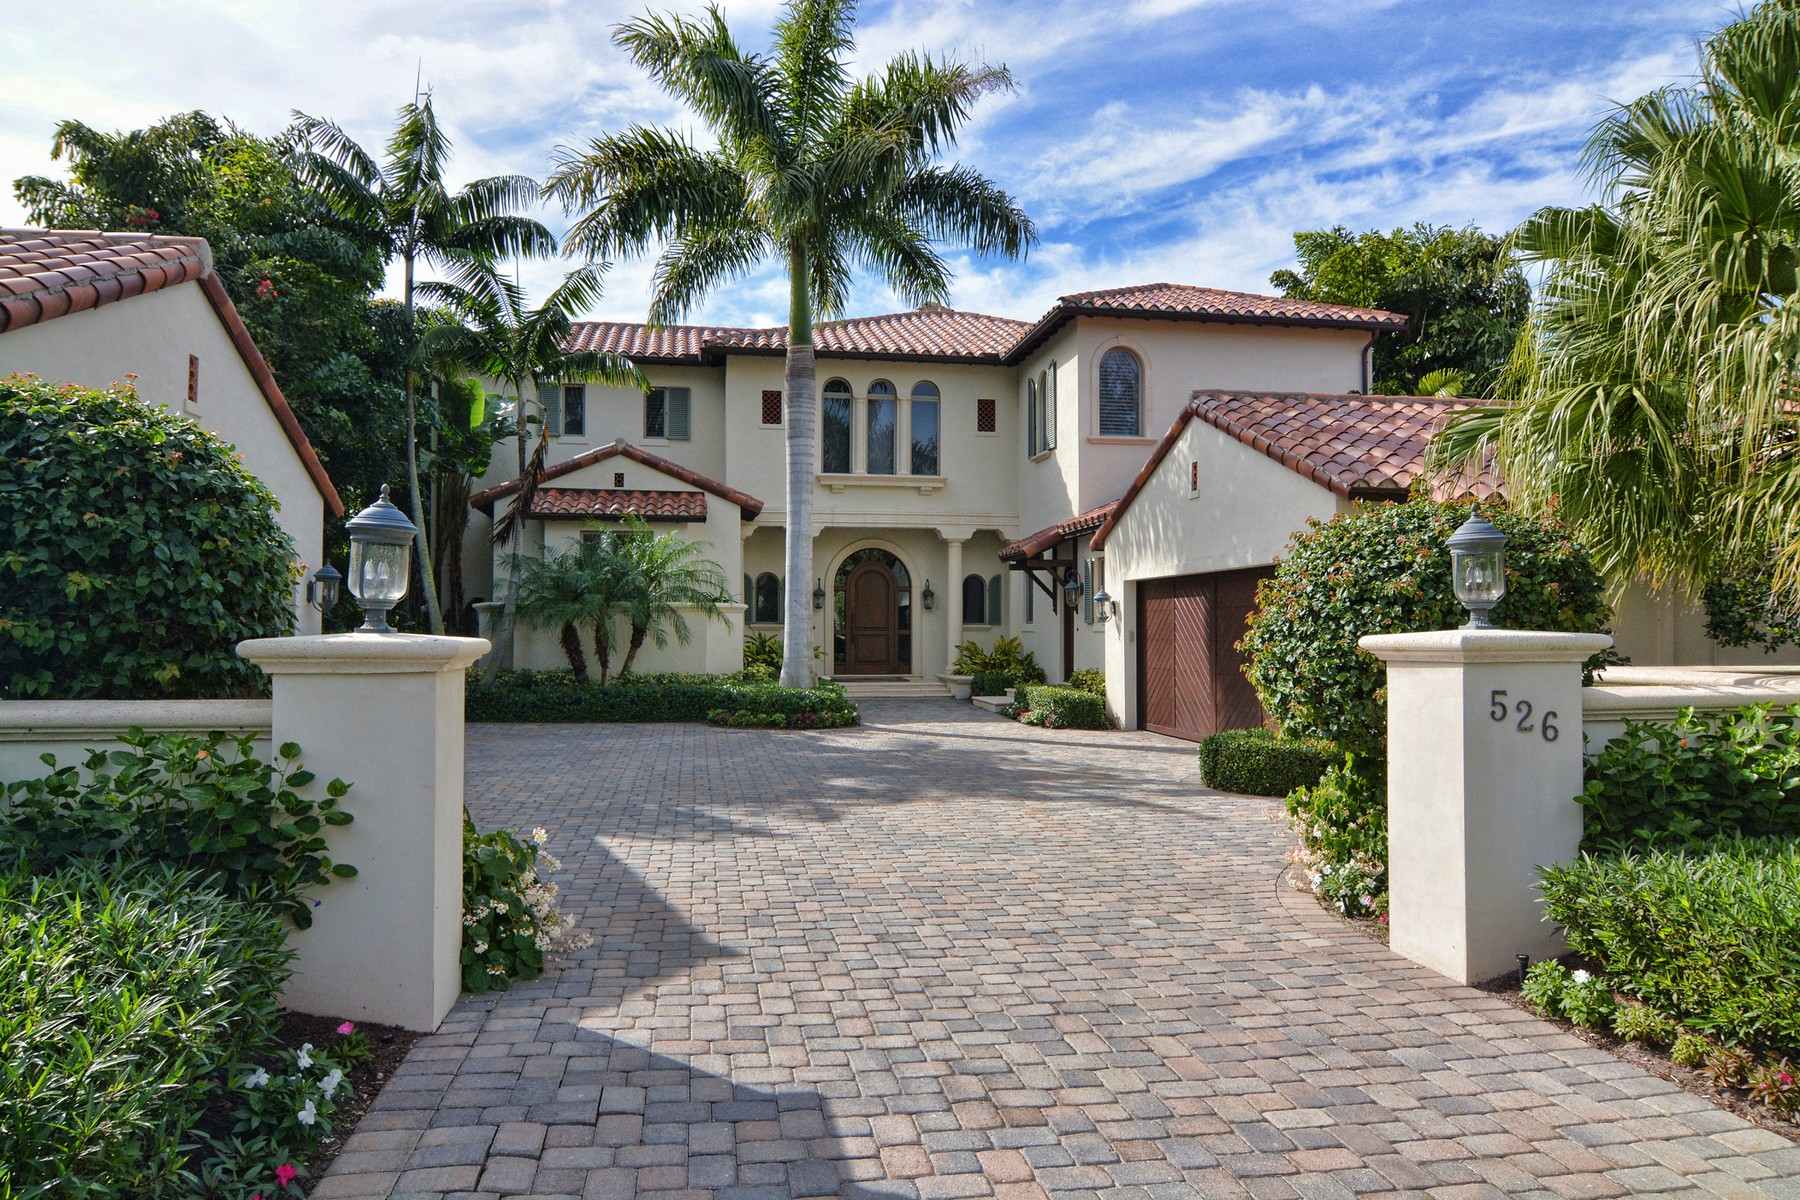 Maison unifamiliale pour l Vente à 526 Bald Eagle Drive at Trump National 526 Bald Eagle Drive Jupiter, Florida 33477 États-Unis